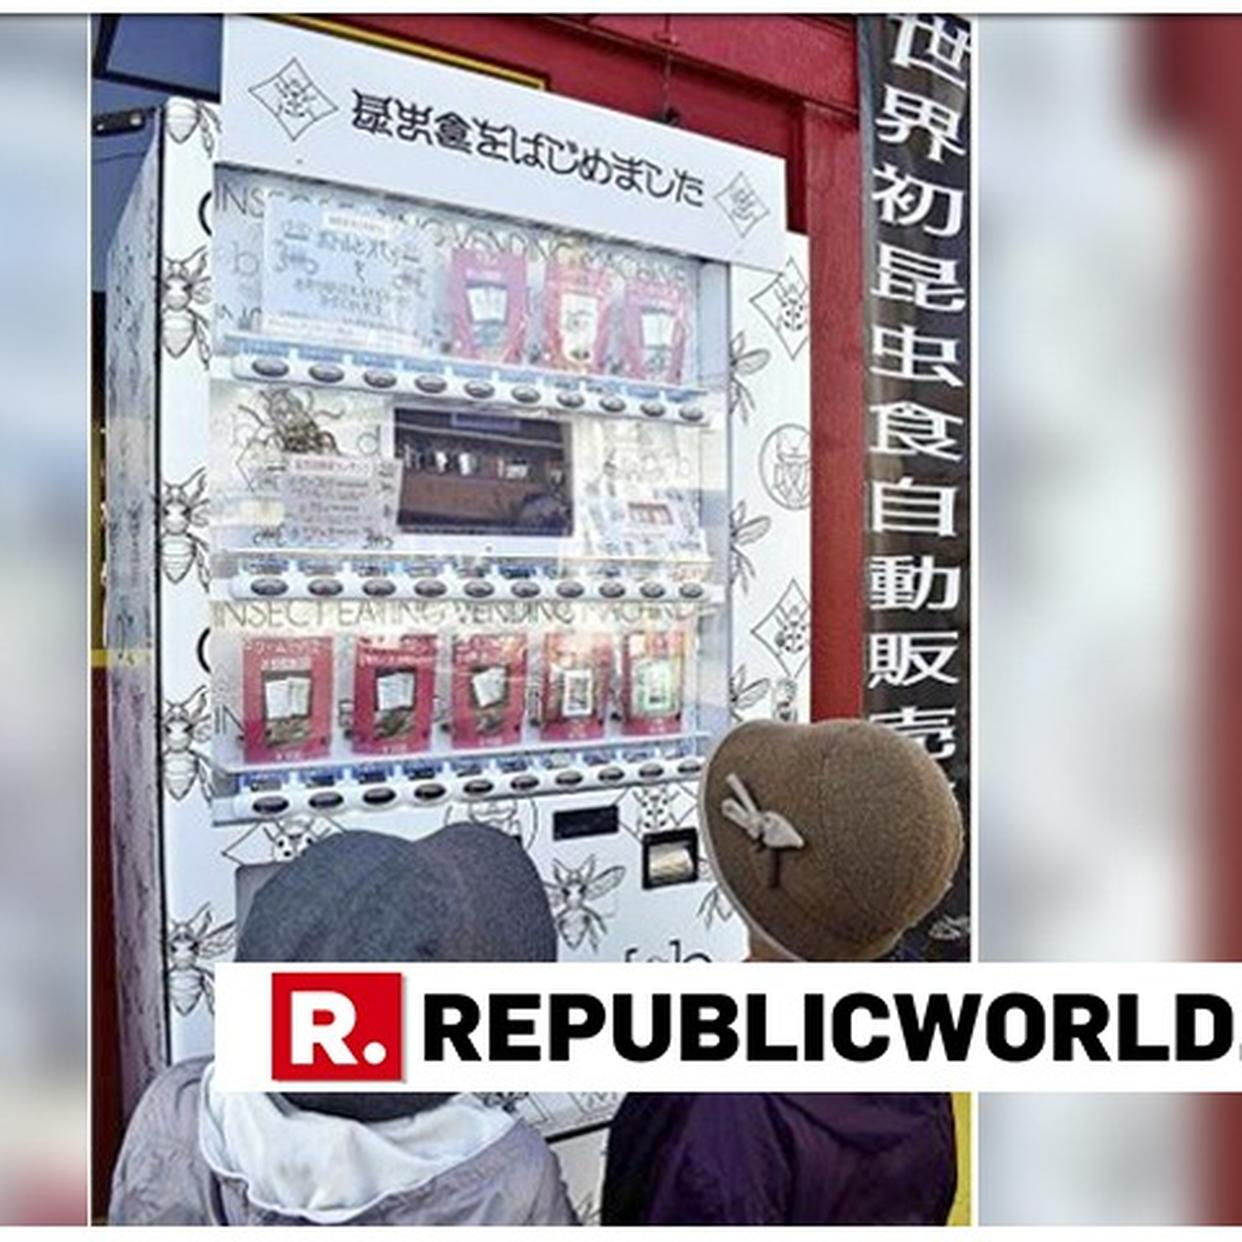 From Cricket Protein Bars To Tarantulas Vending Machine In Japan Sells Bugs Here Are More Eccentric Vending Machines From Around The World Republic World